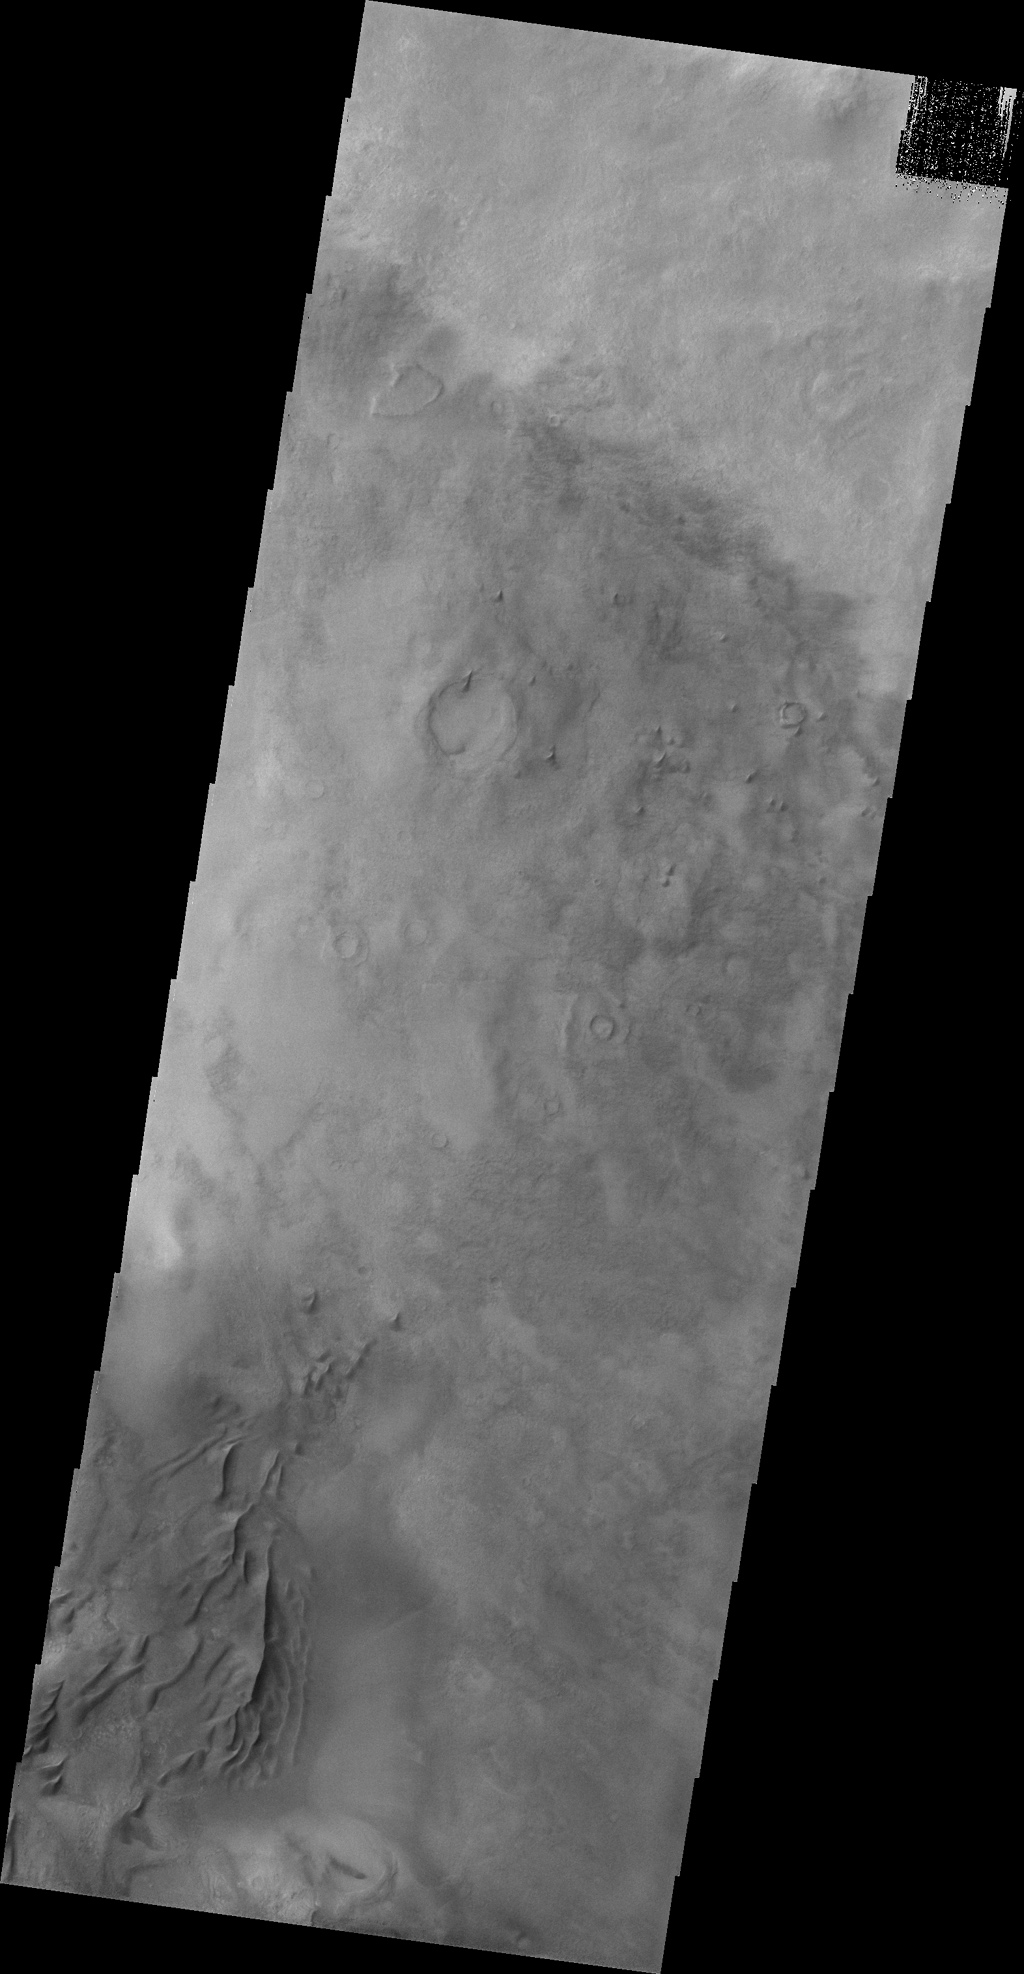 This image captured by NASA's 2001 Mars Odyssey spacecraft shows some of the dunes on the floor of Darwin Crater.